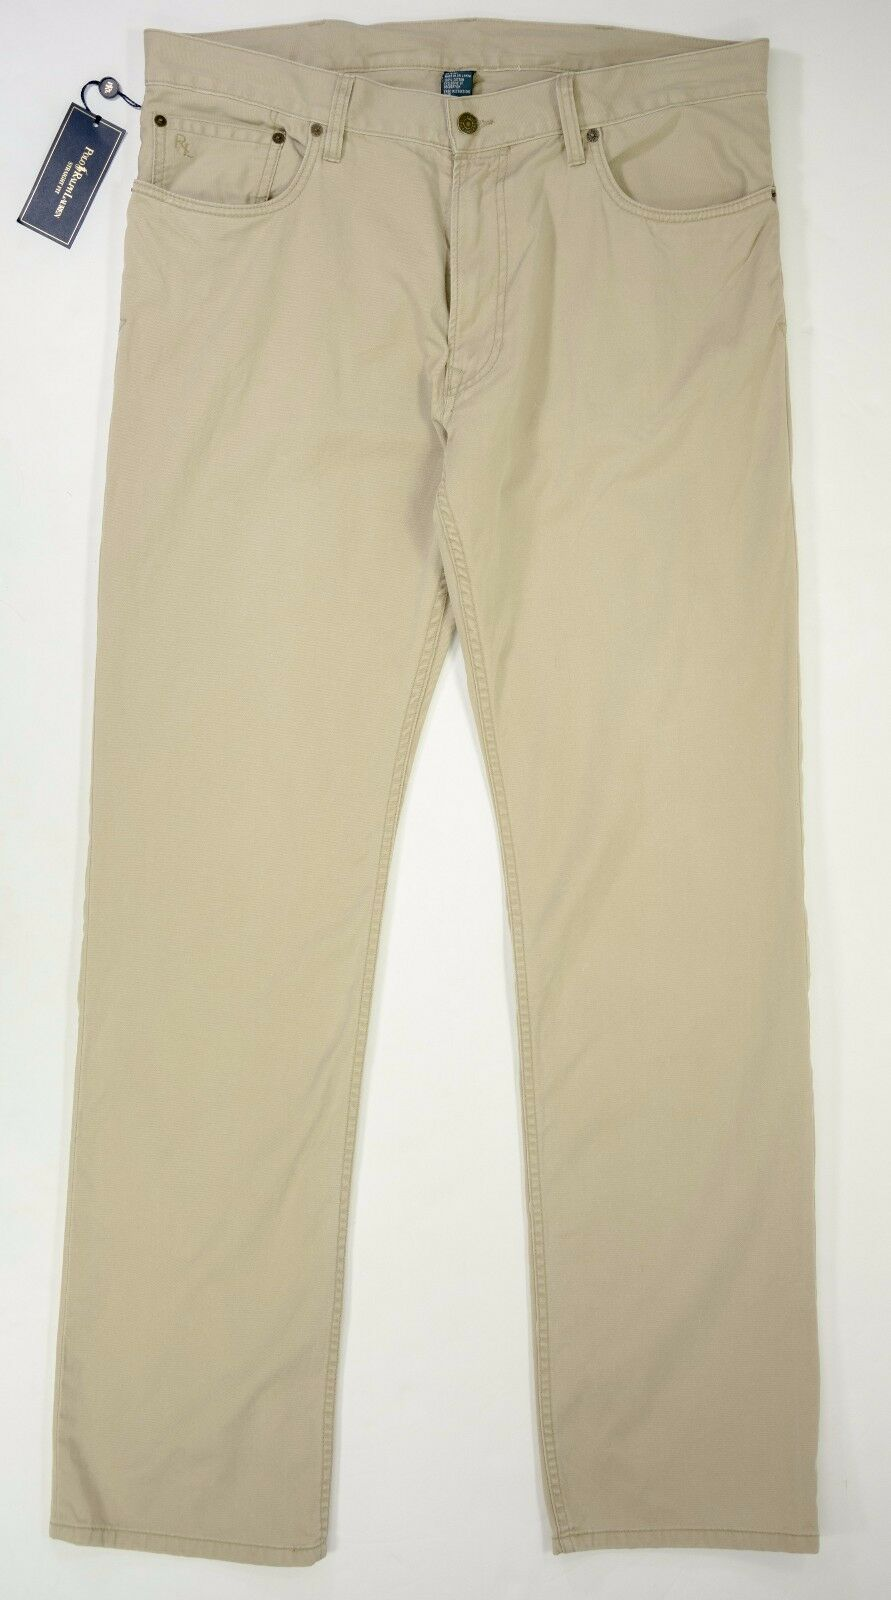 Men's Polo Ralph Lauren size 36x34 Beige Straight Fit Khaki Jeans NEW